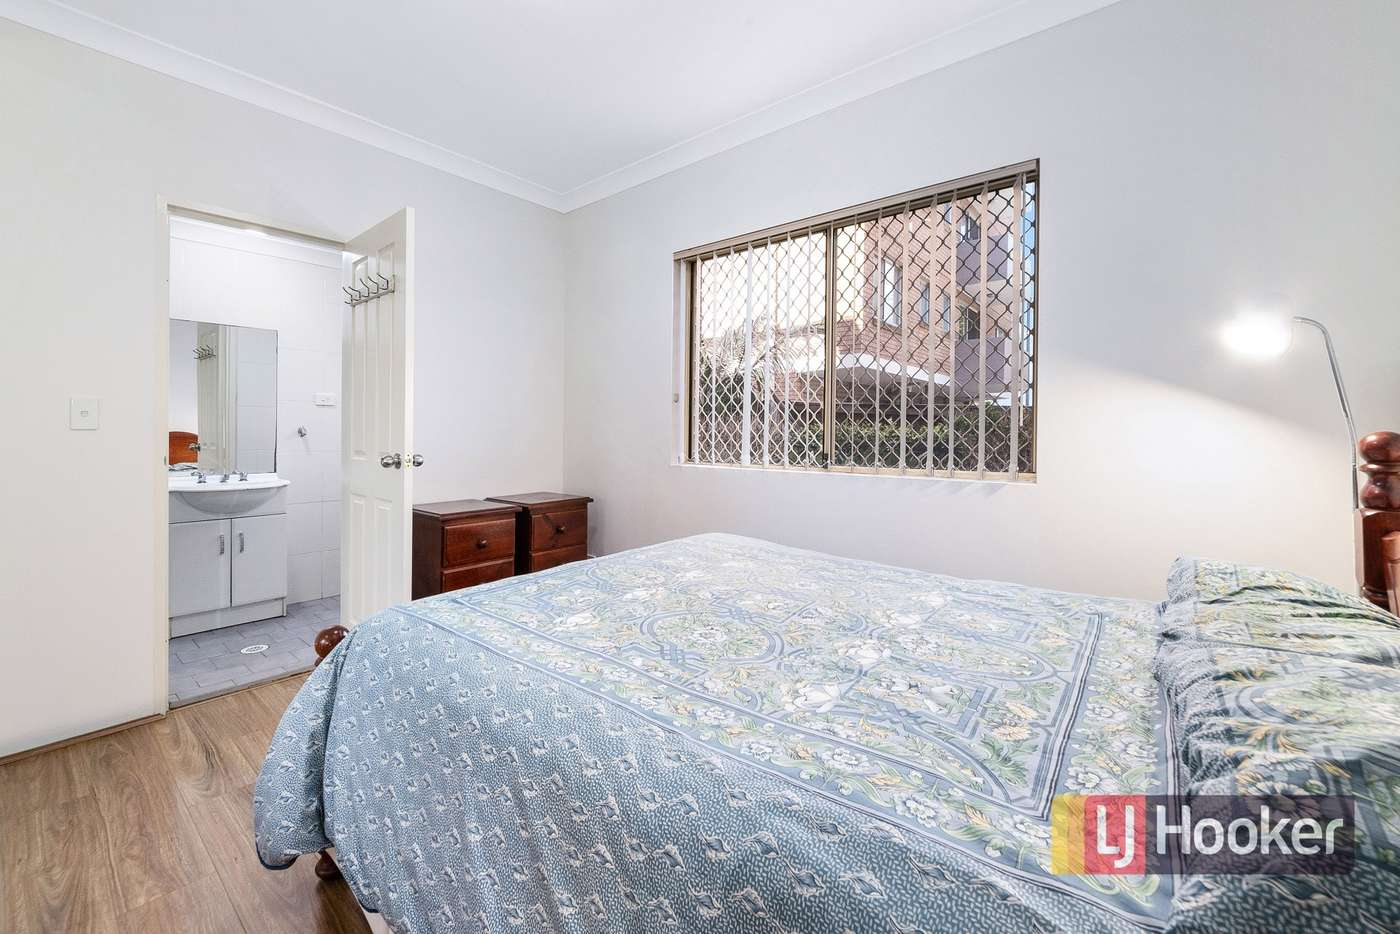 Sixth view of Homely apartment listing, 4a/88-98 Marsden St, Parramatta NSW 2150